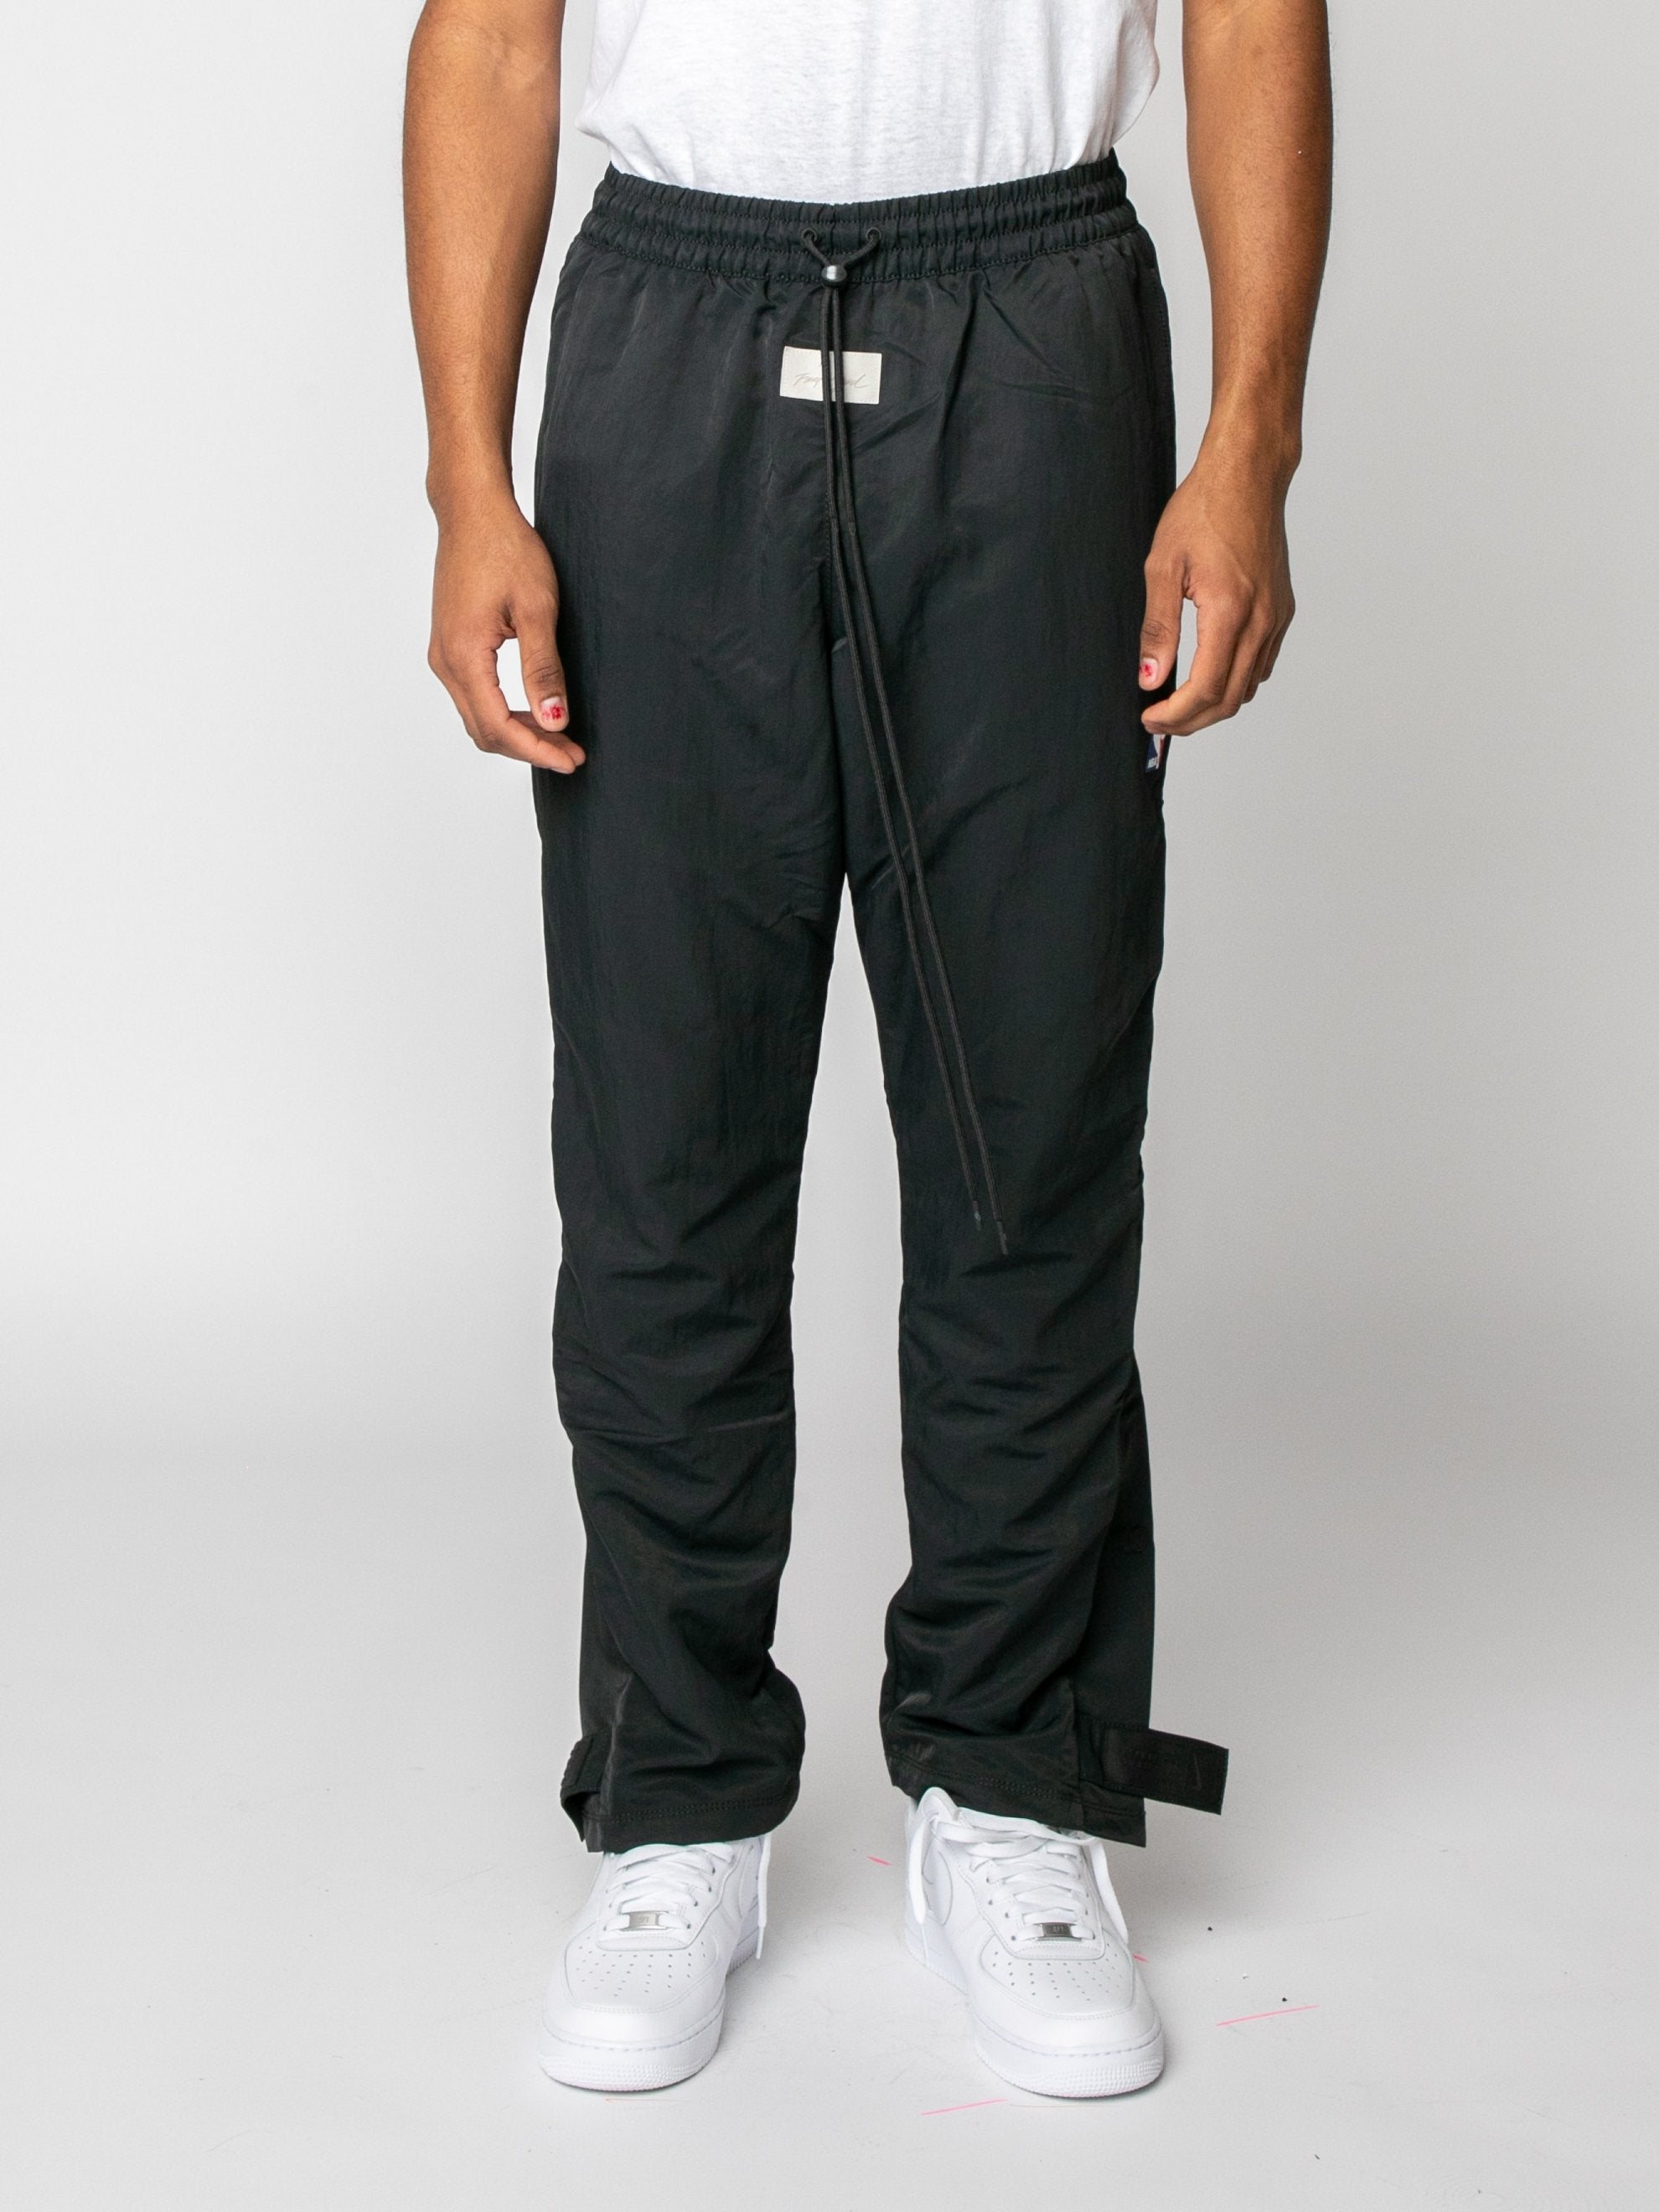 Off Noir Nike x Fear Of God Warm Up Pant 2